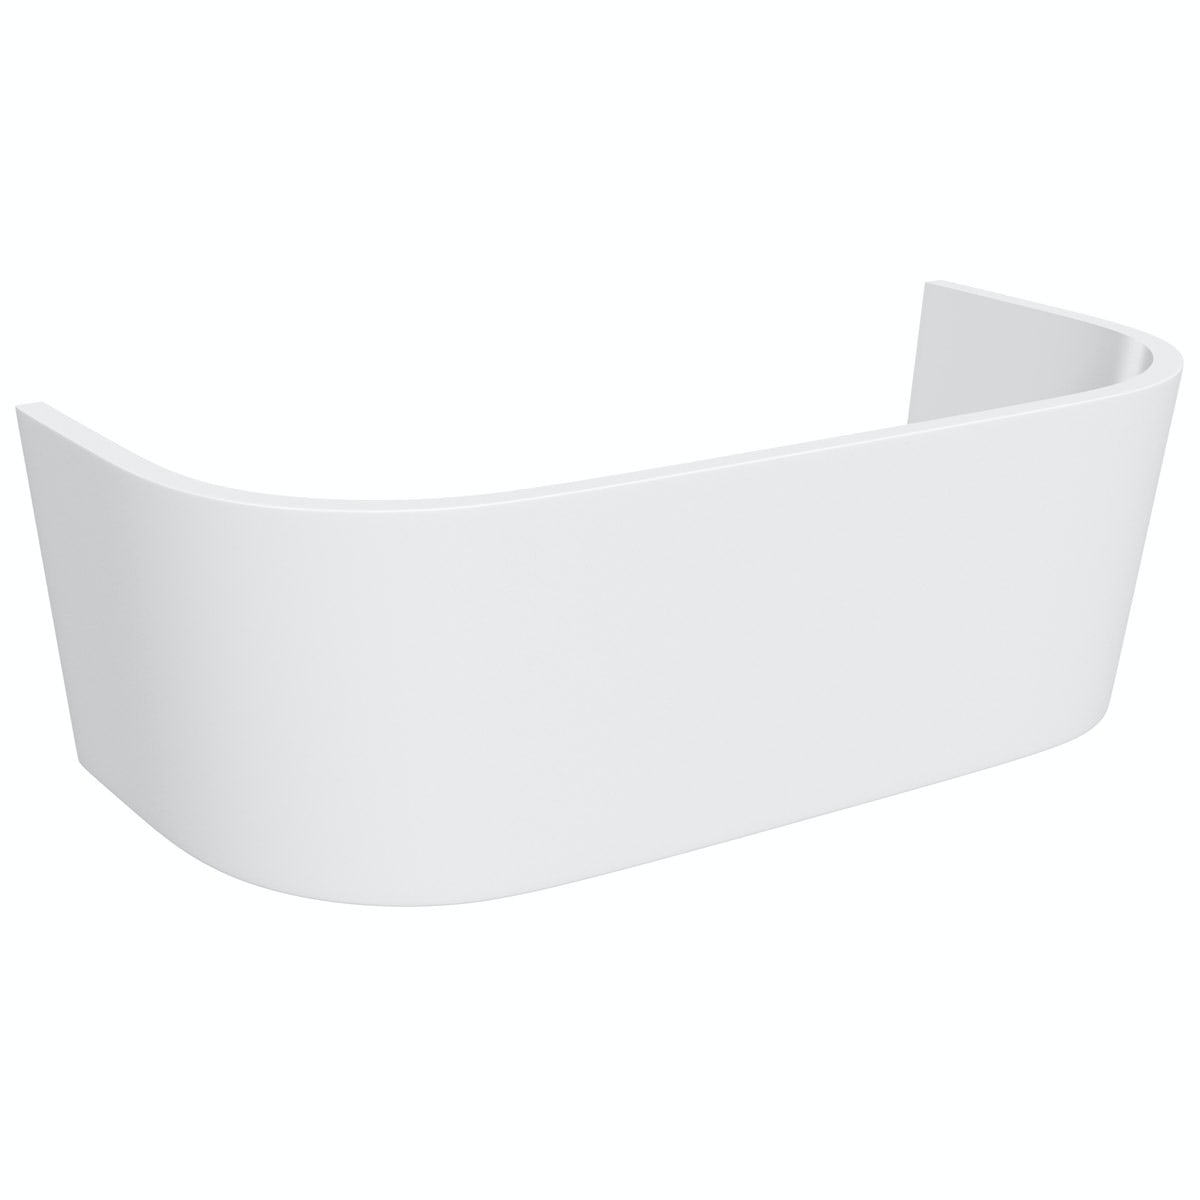 Orchard Elsdon D shaped acrylic bath panel